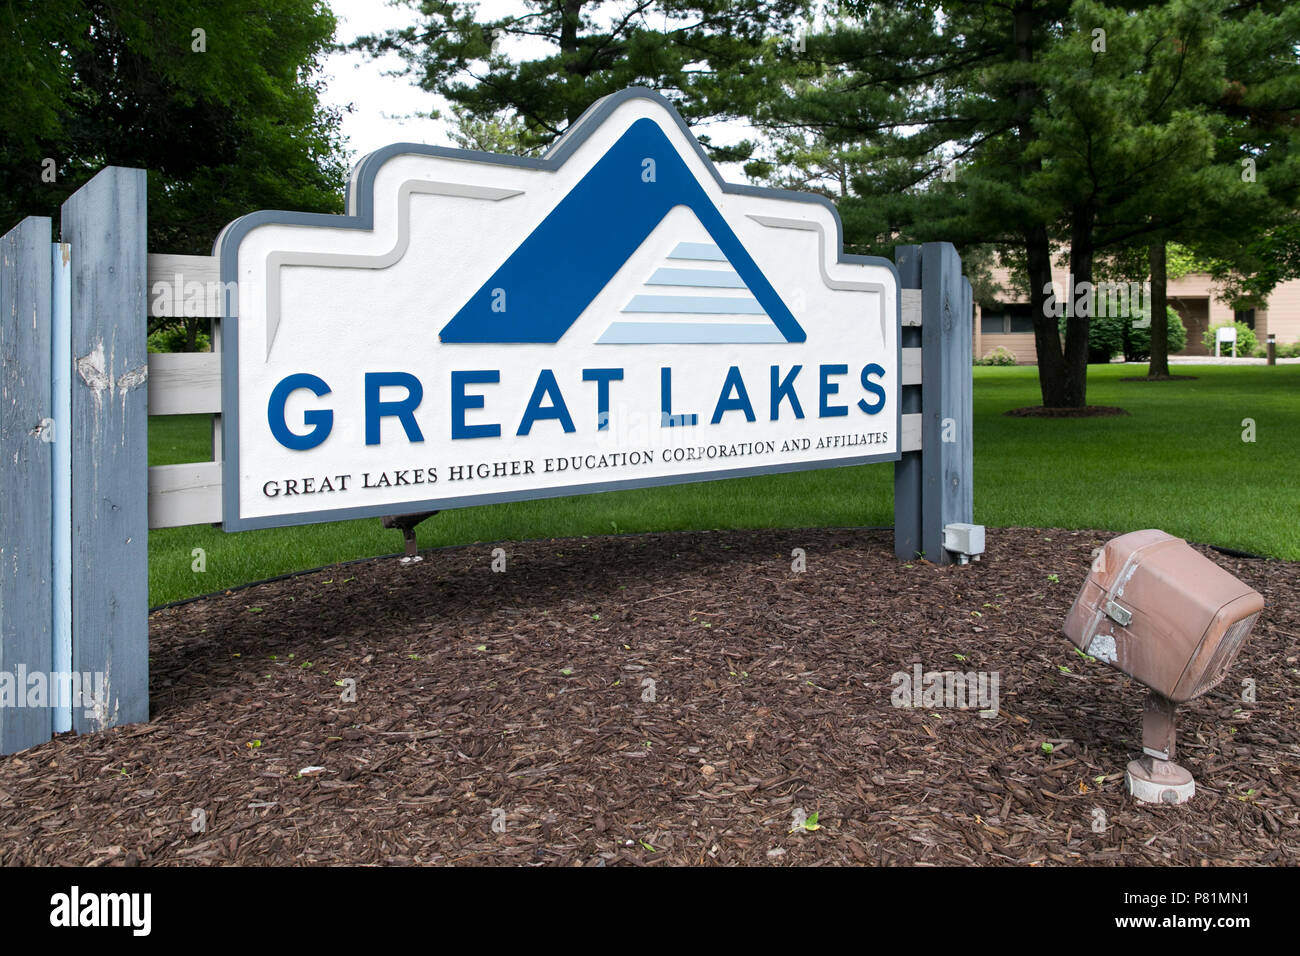 A logo sign outside of the headquarters of the Great Lakes Higher Education Corporation in Madison, Wisconsin, on June 23, 2018. - Stock Image